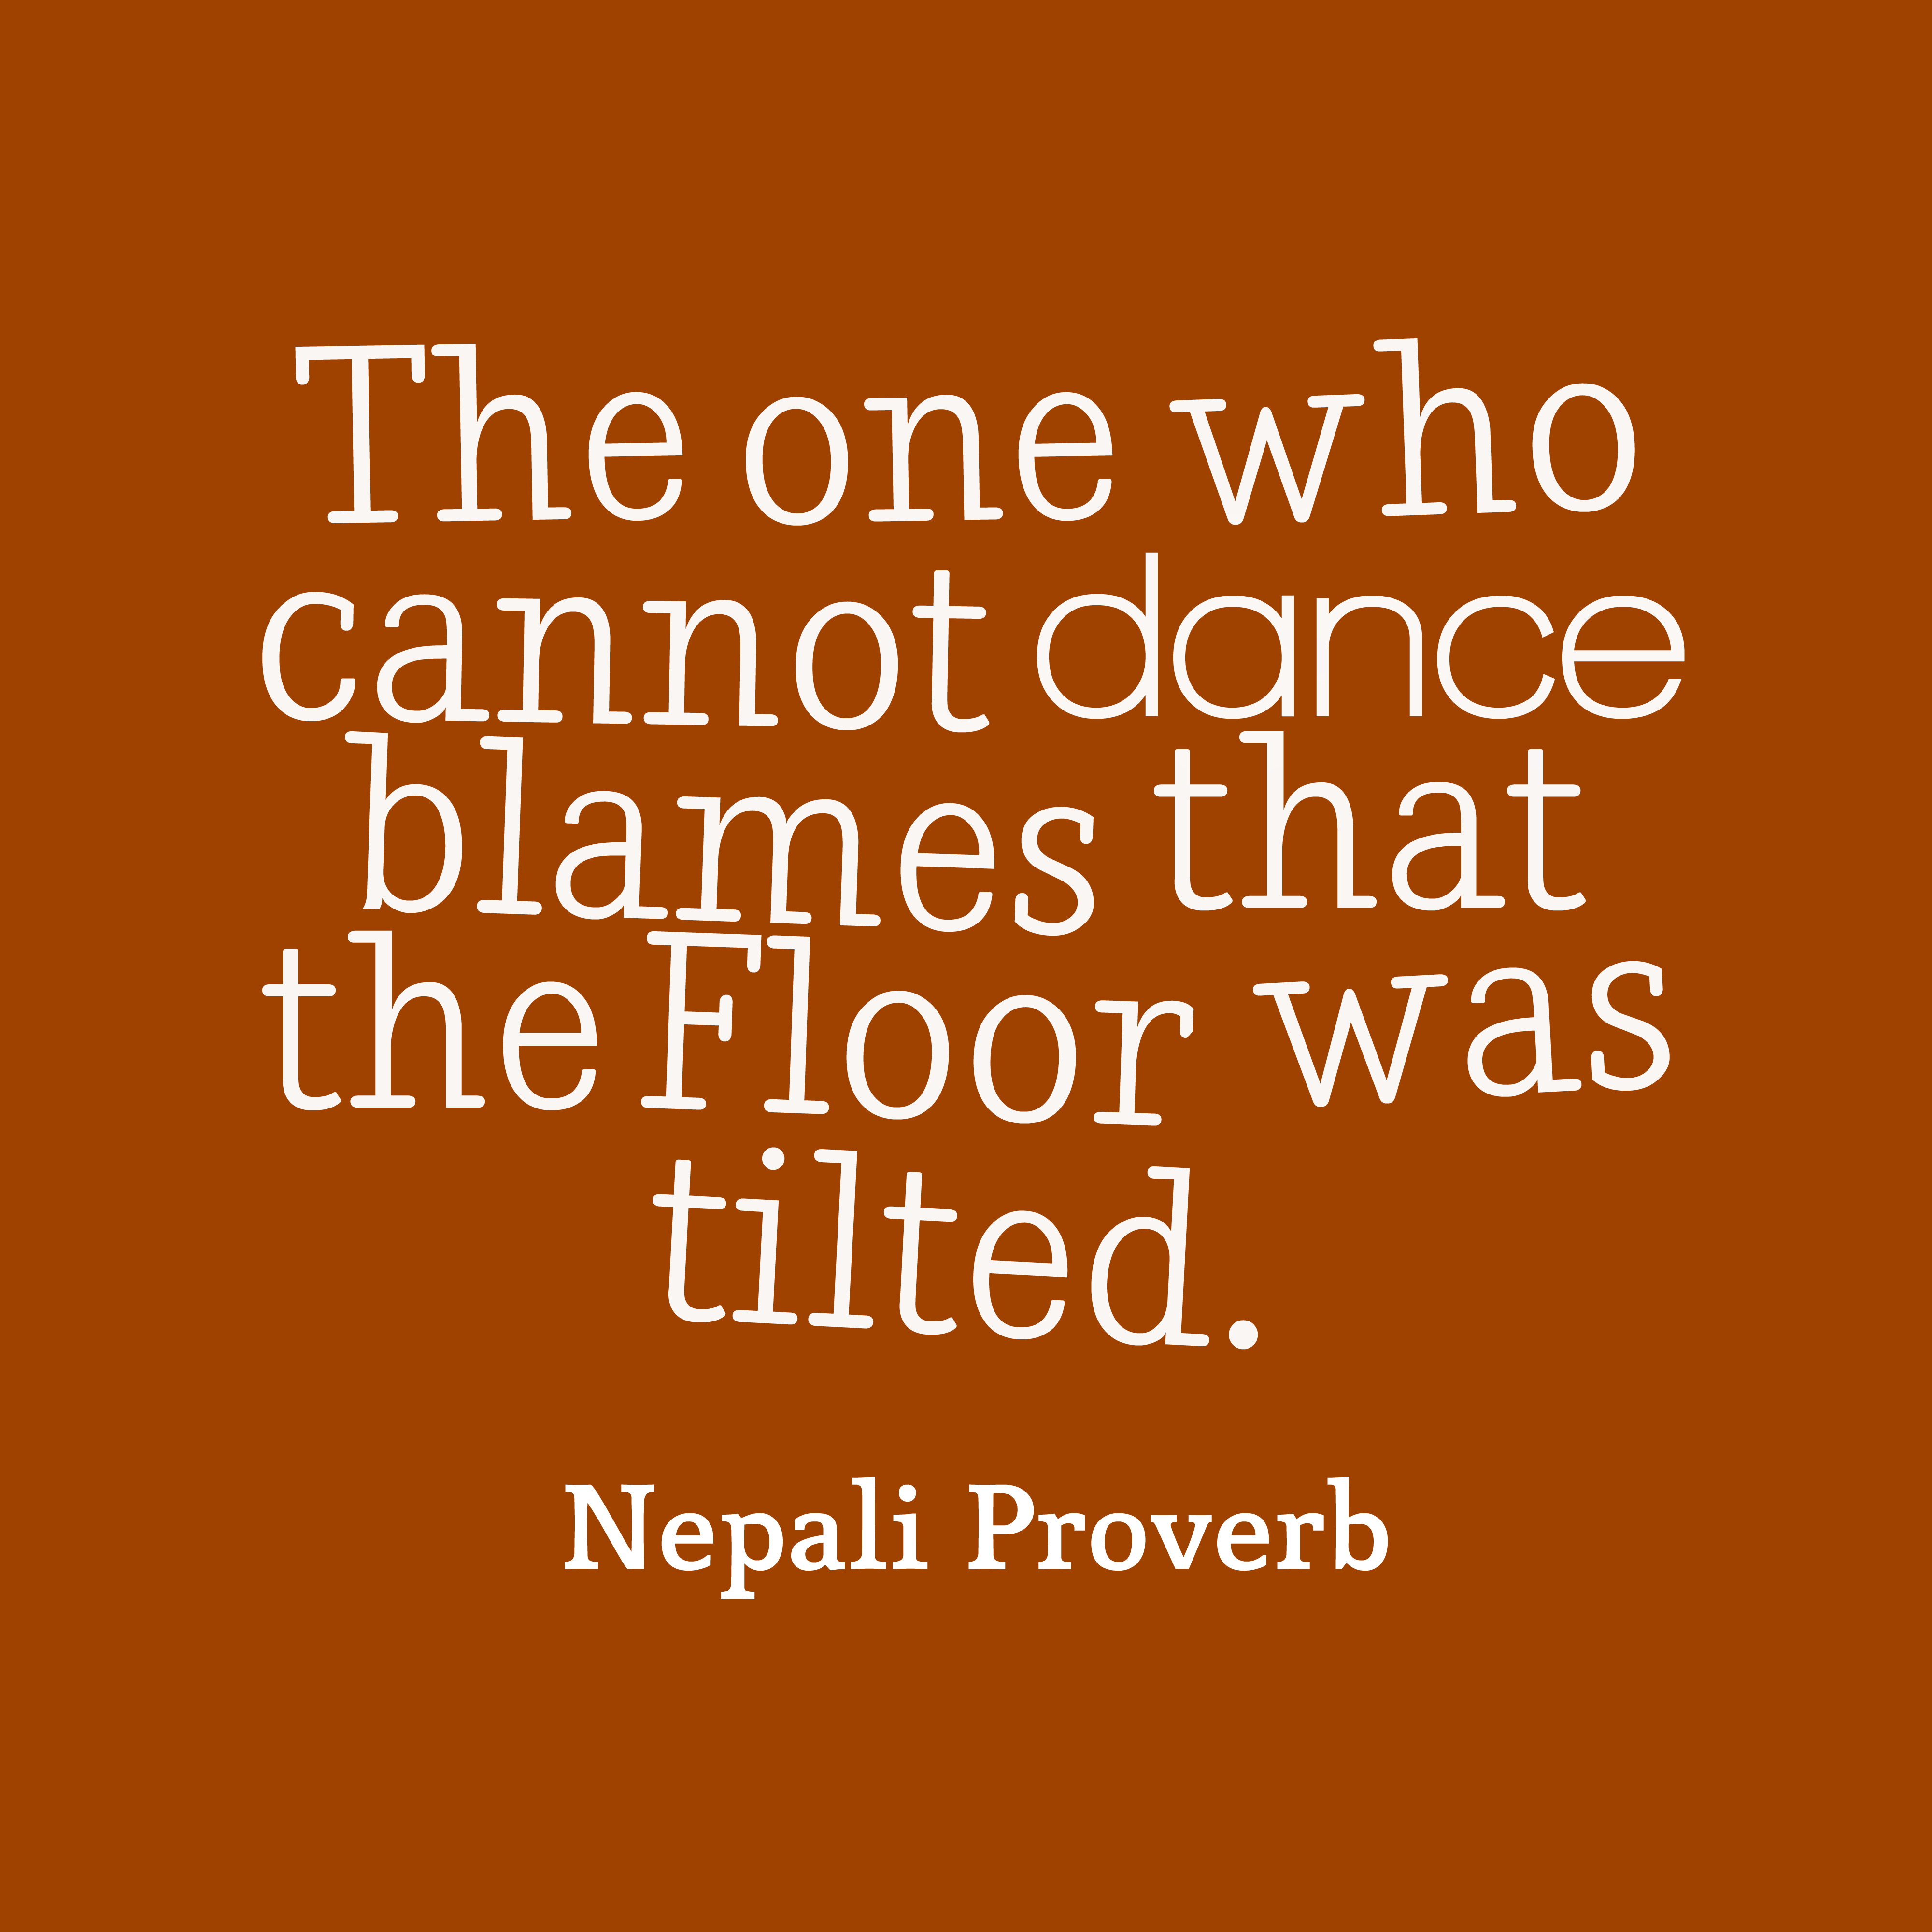 Quotes image of The one who cannot dance blames that the Floor was tilted.